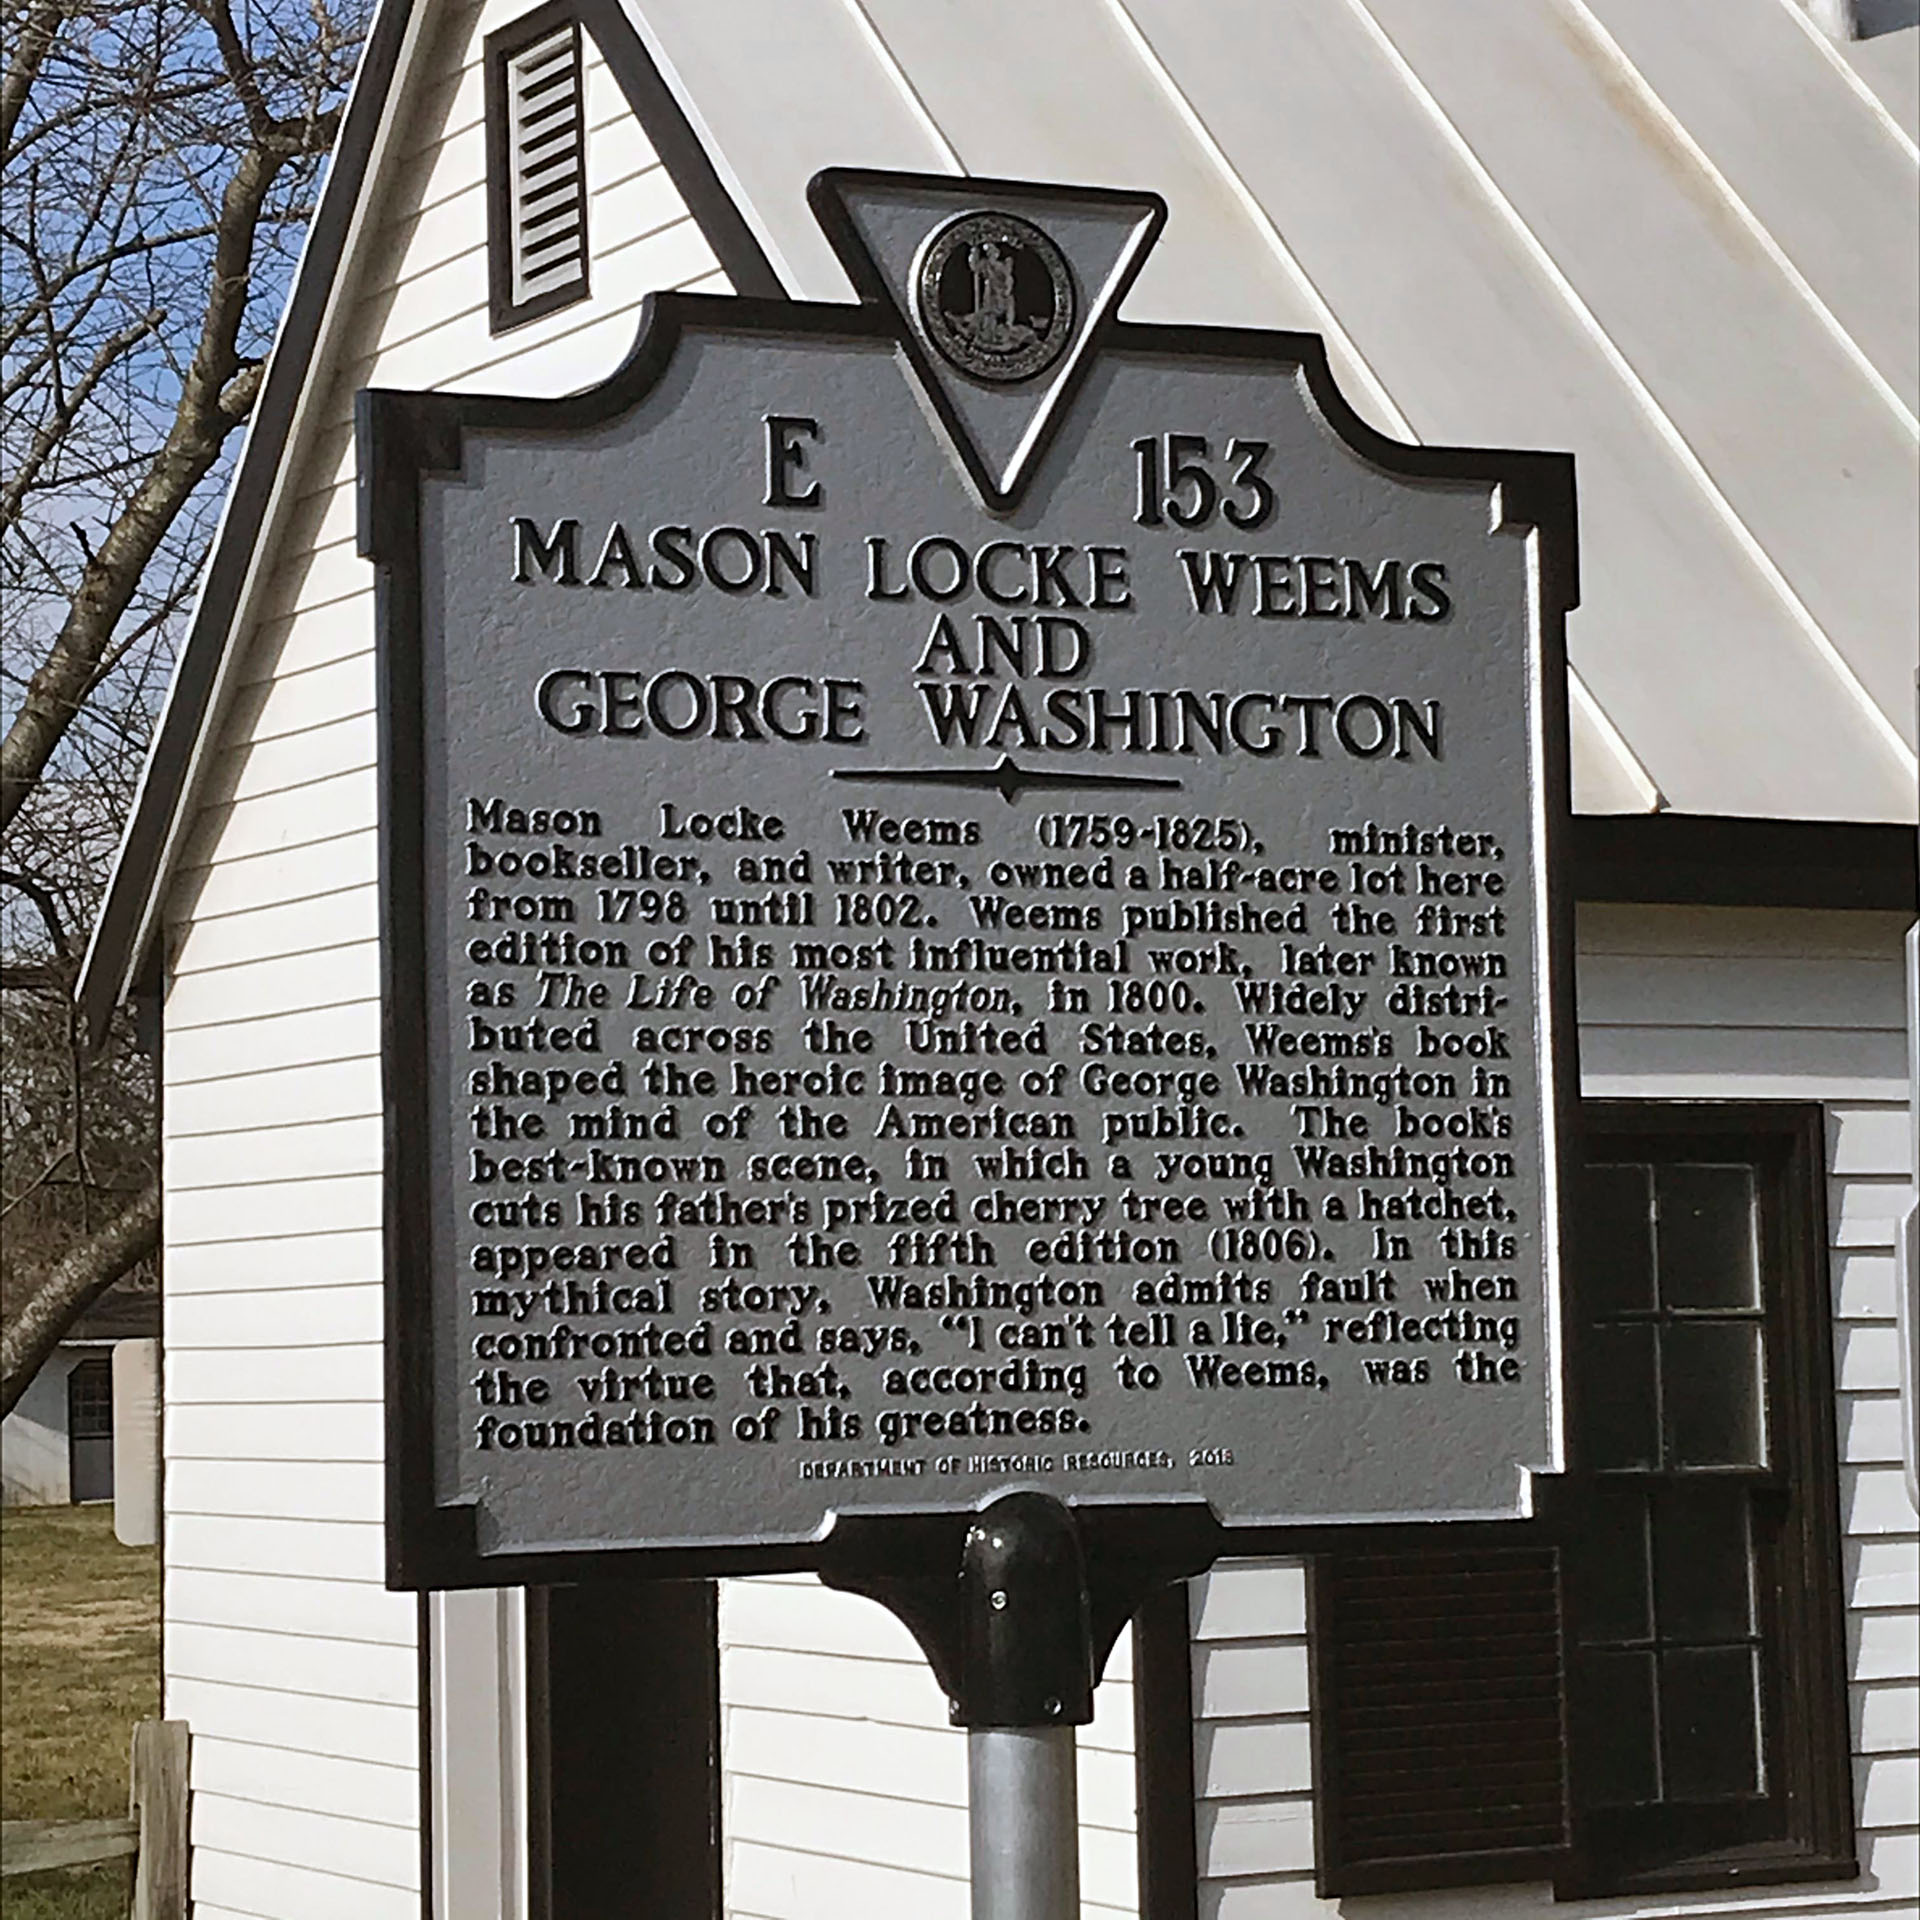 New historical marker features George Washington story